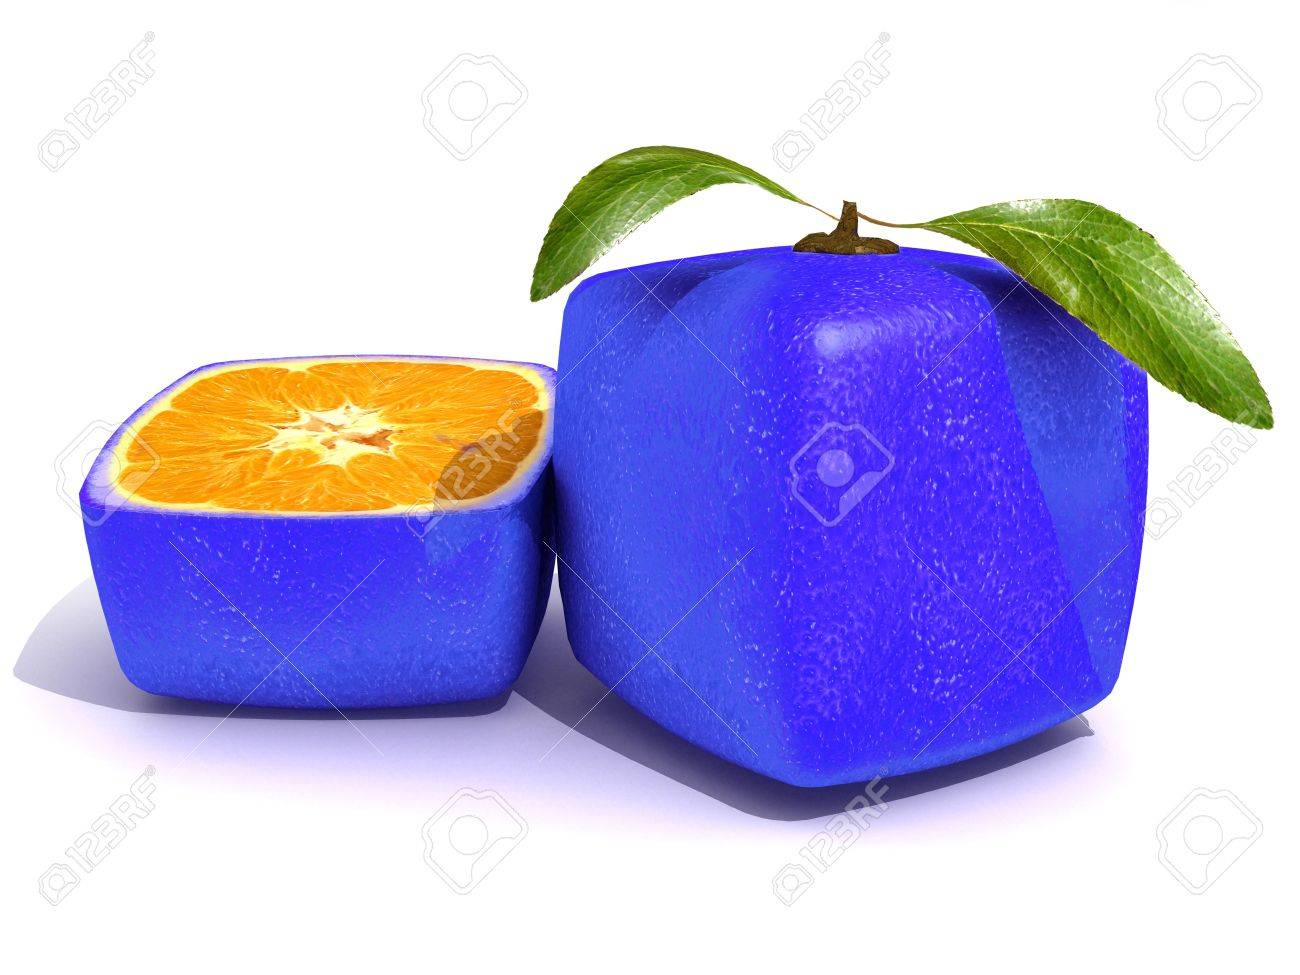 3D rendering of a blue cubic citric fruit and a half Stock Photo - 5631903